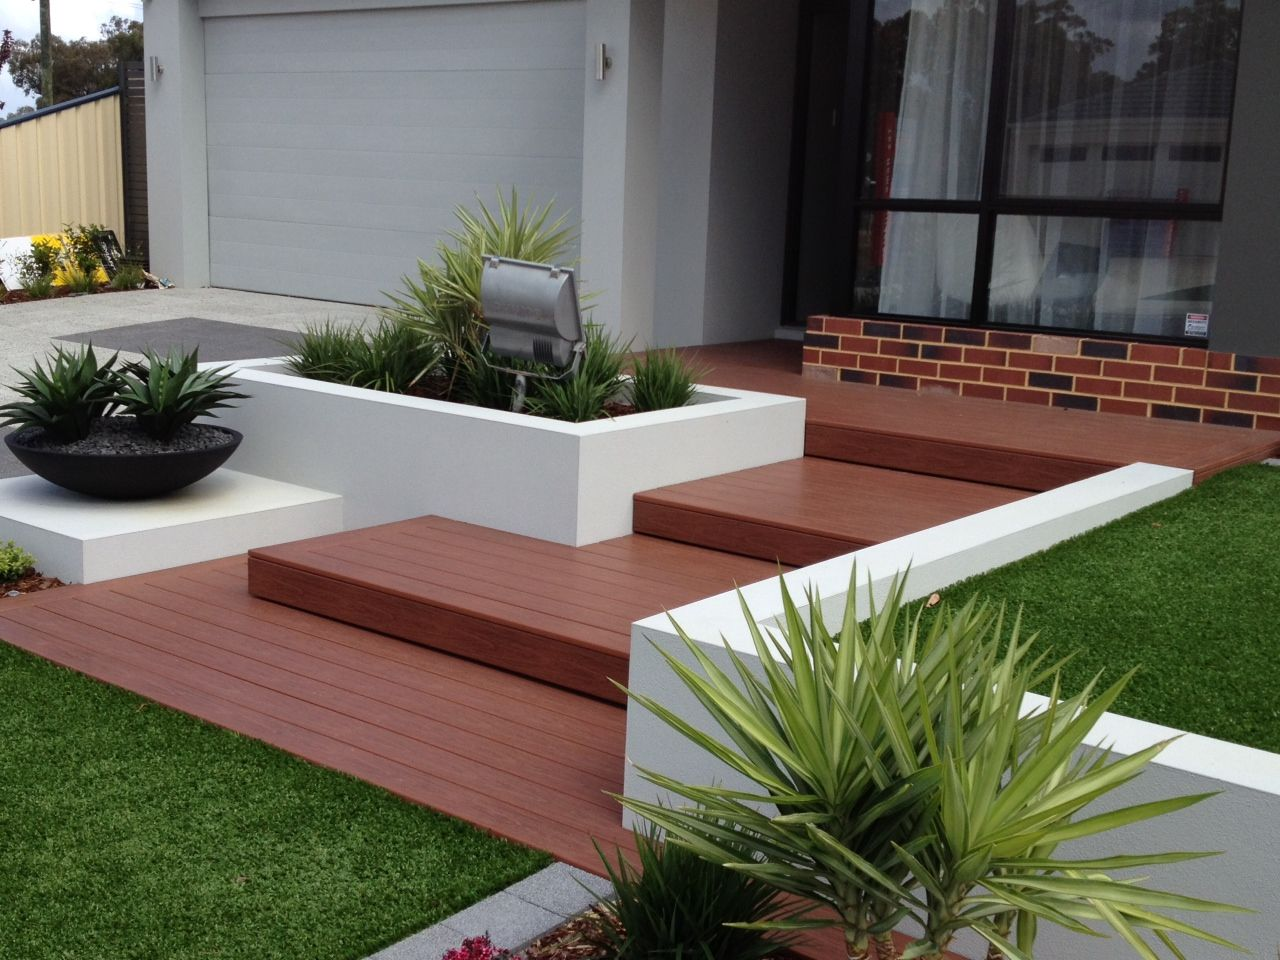 Enchanting Small Garden Landscape Ideas With Stepping Walk: Gossen PVC Deck Showcase In